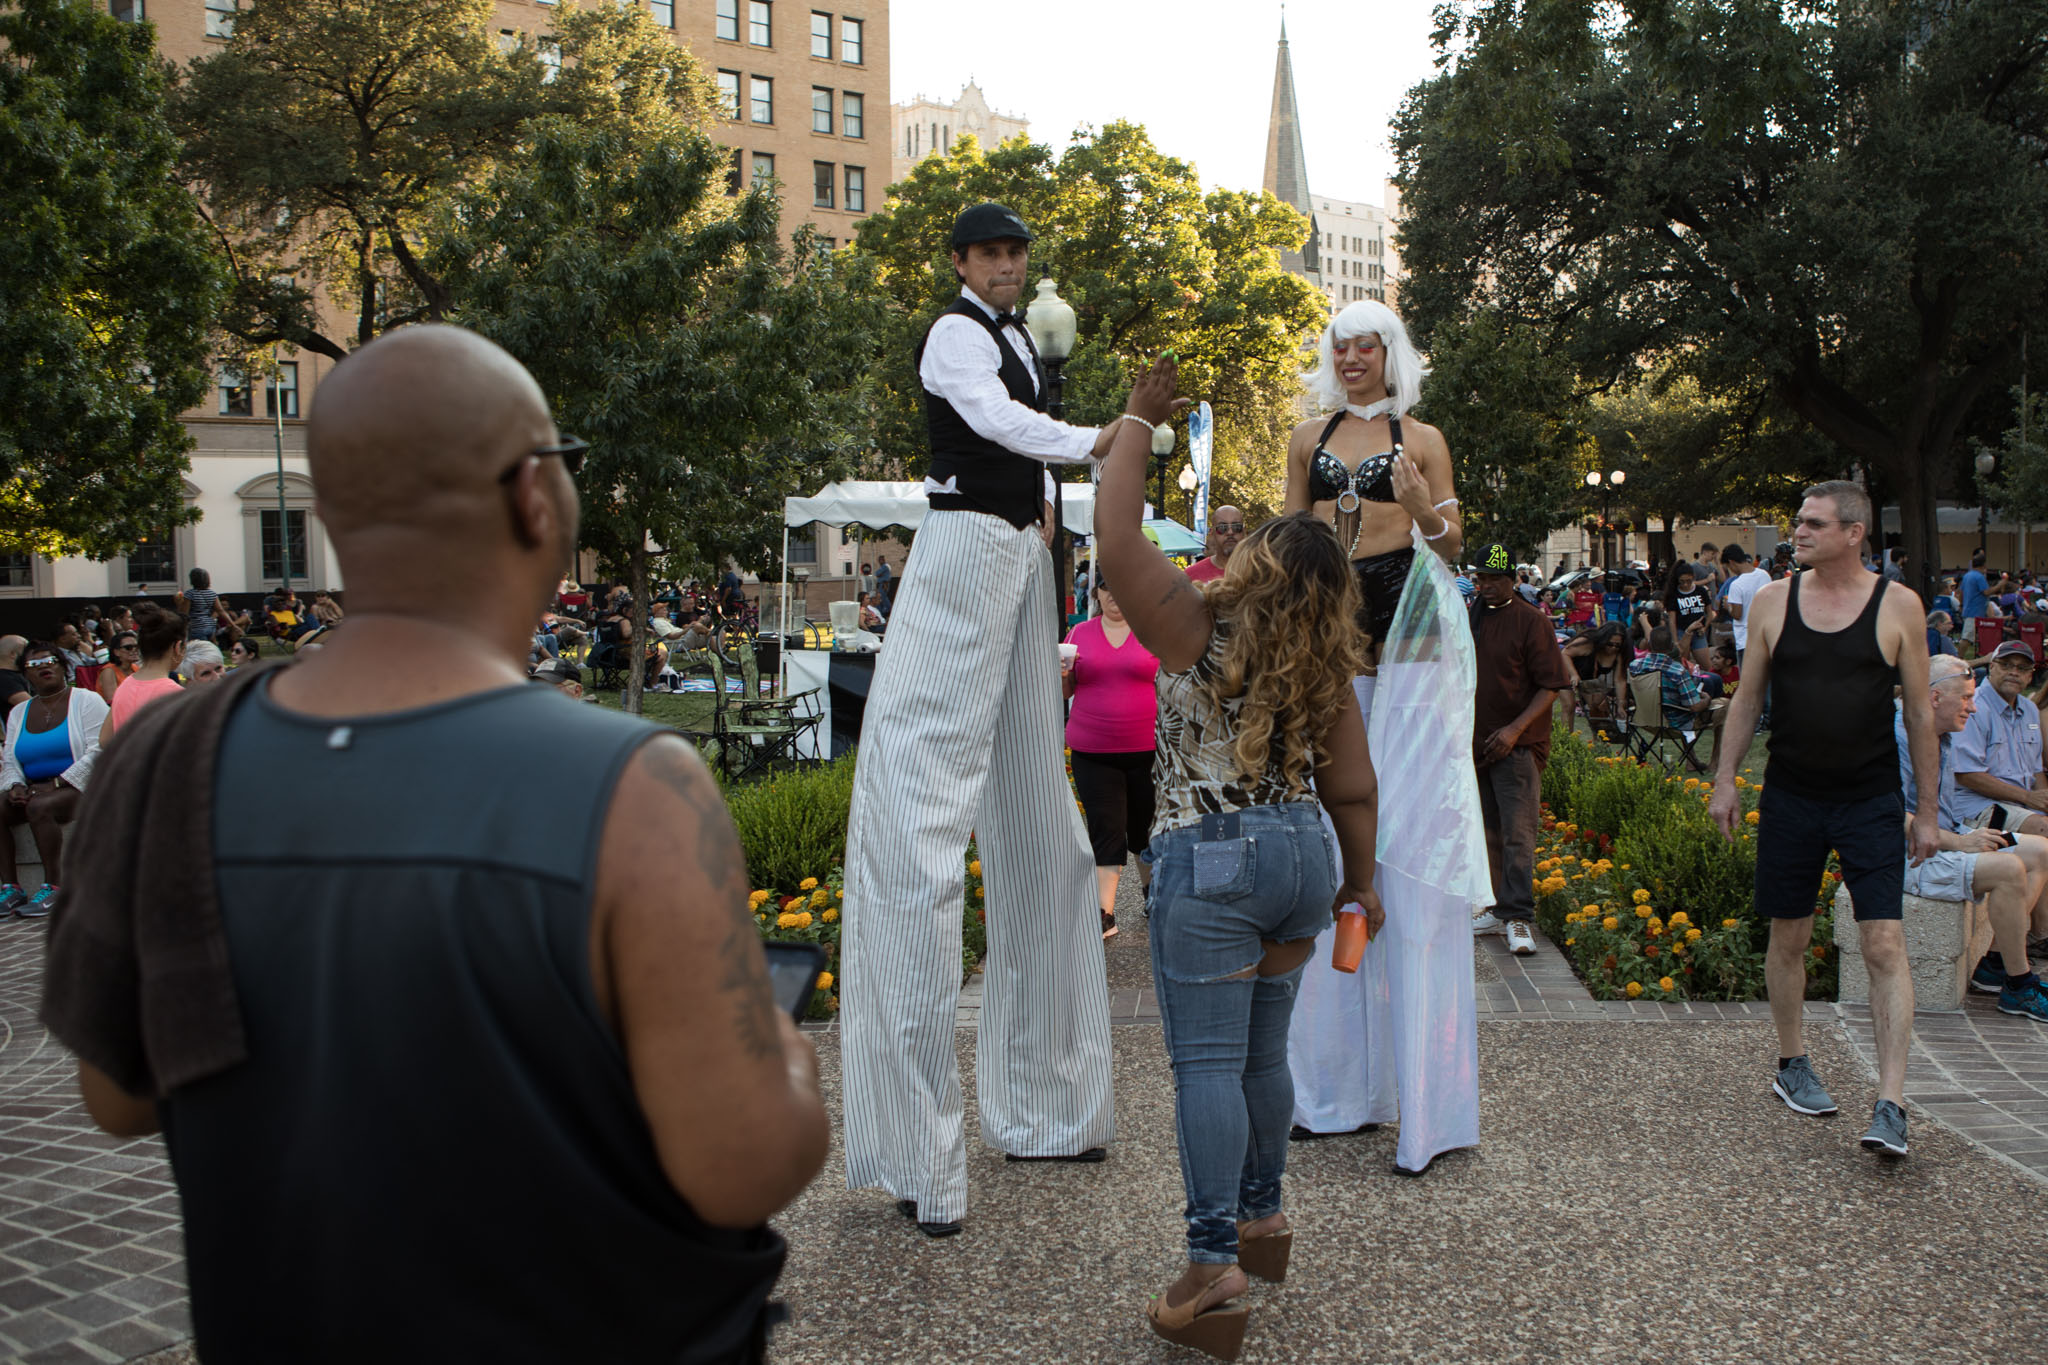 Monique Russell gives a high five to the Aqua Acro stilt walkers at Jazz'SALive 2017.